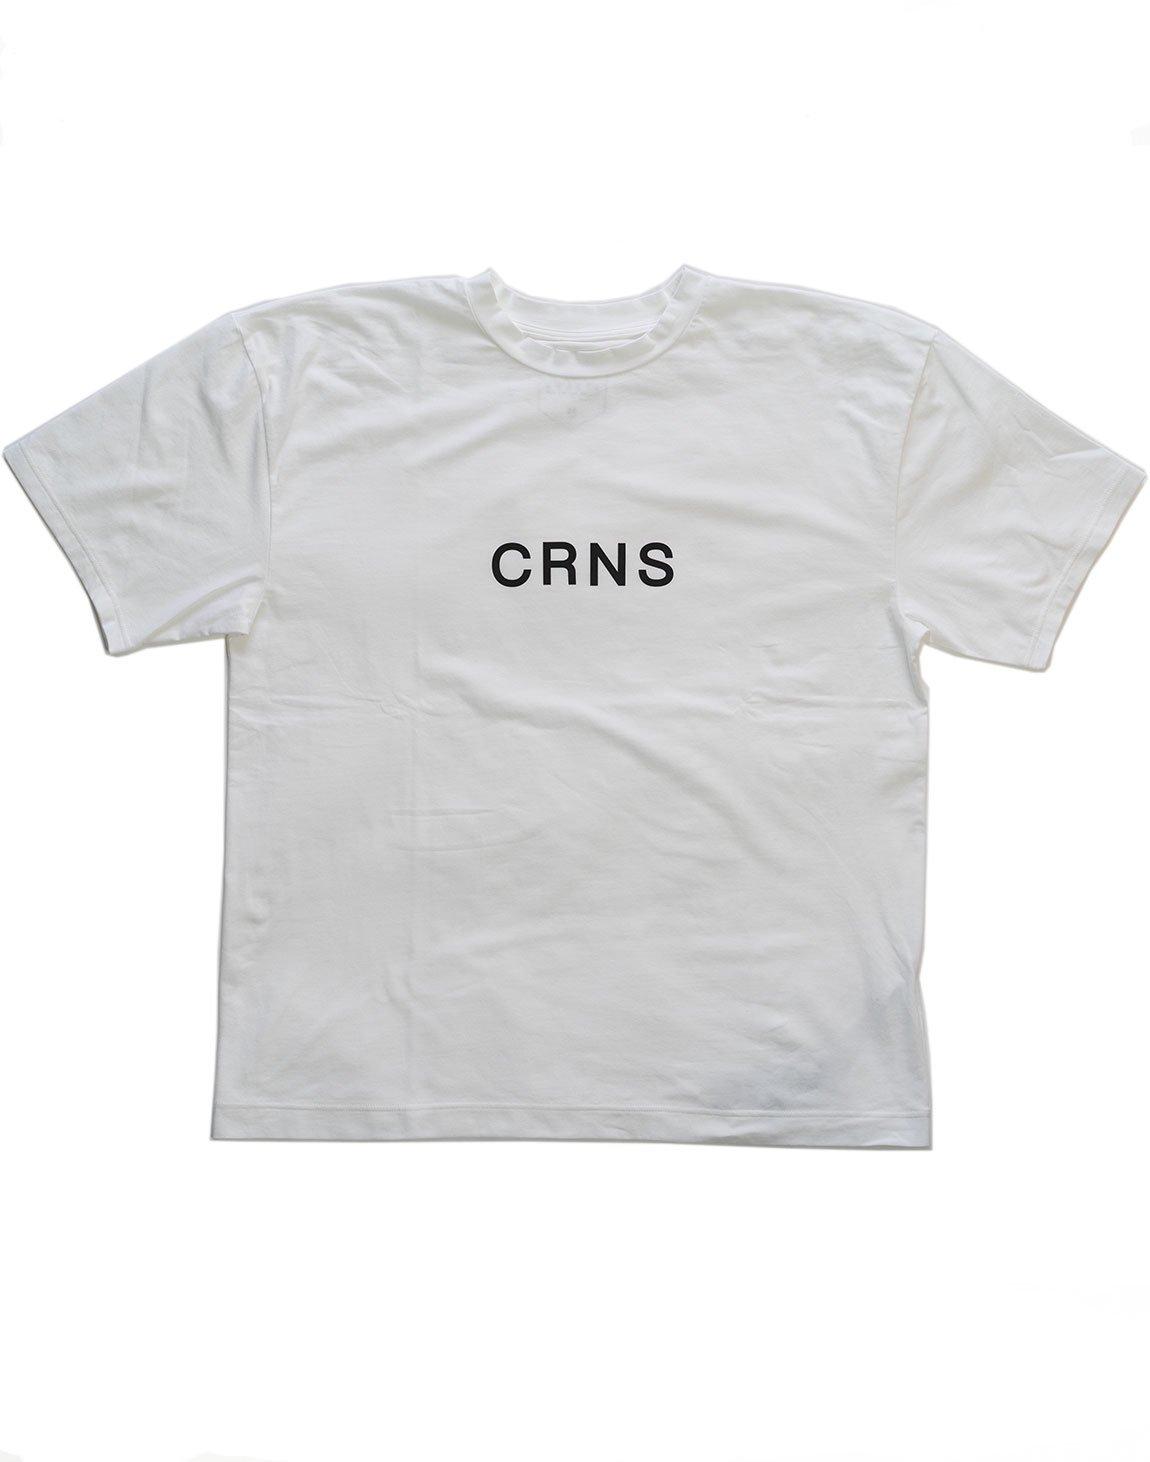 <img class='new_mark_img1' src='https://img.shop-pro.jp/img/new/icons1.gif' style='border:none;display:inline;margin:0px;padding:0px;width:auto;' />CRNS Over Size T-Shirt  WHITE